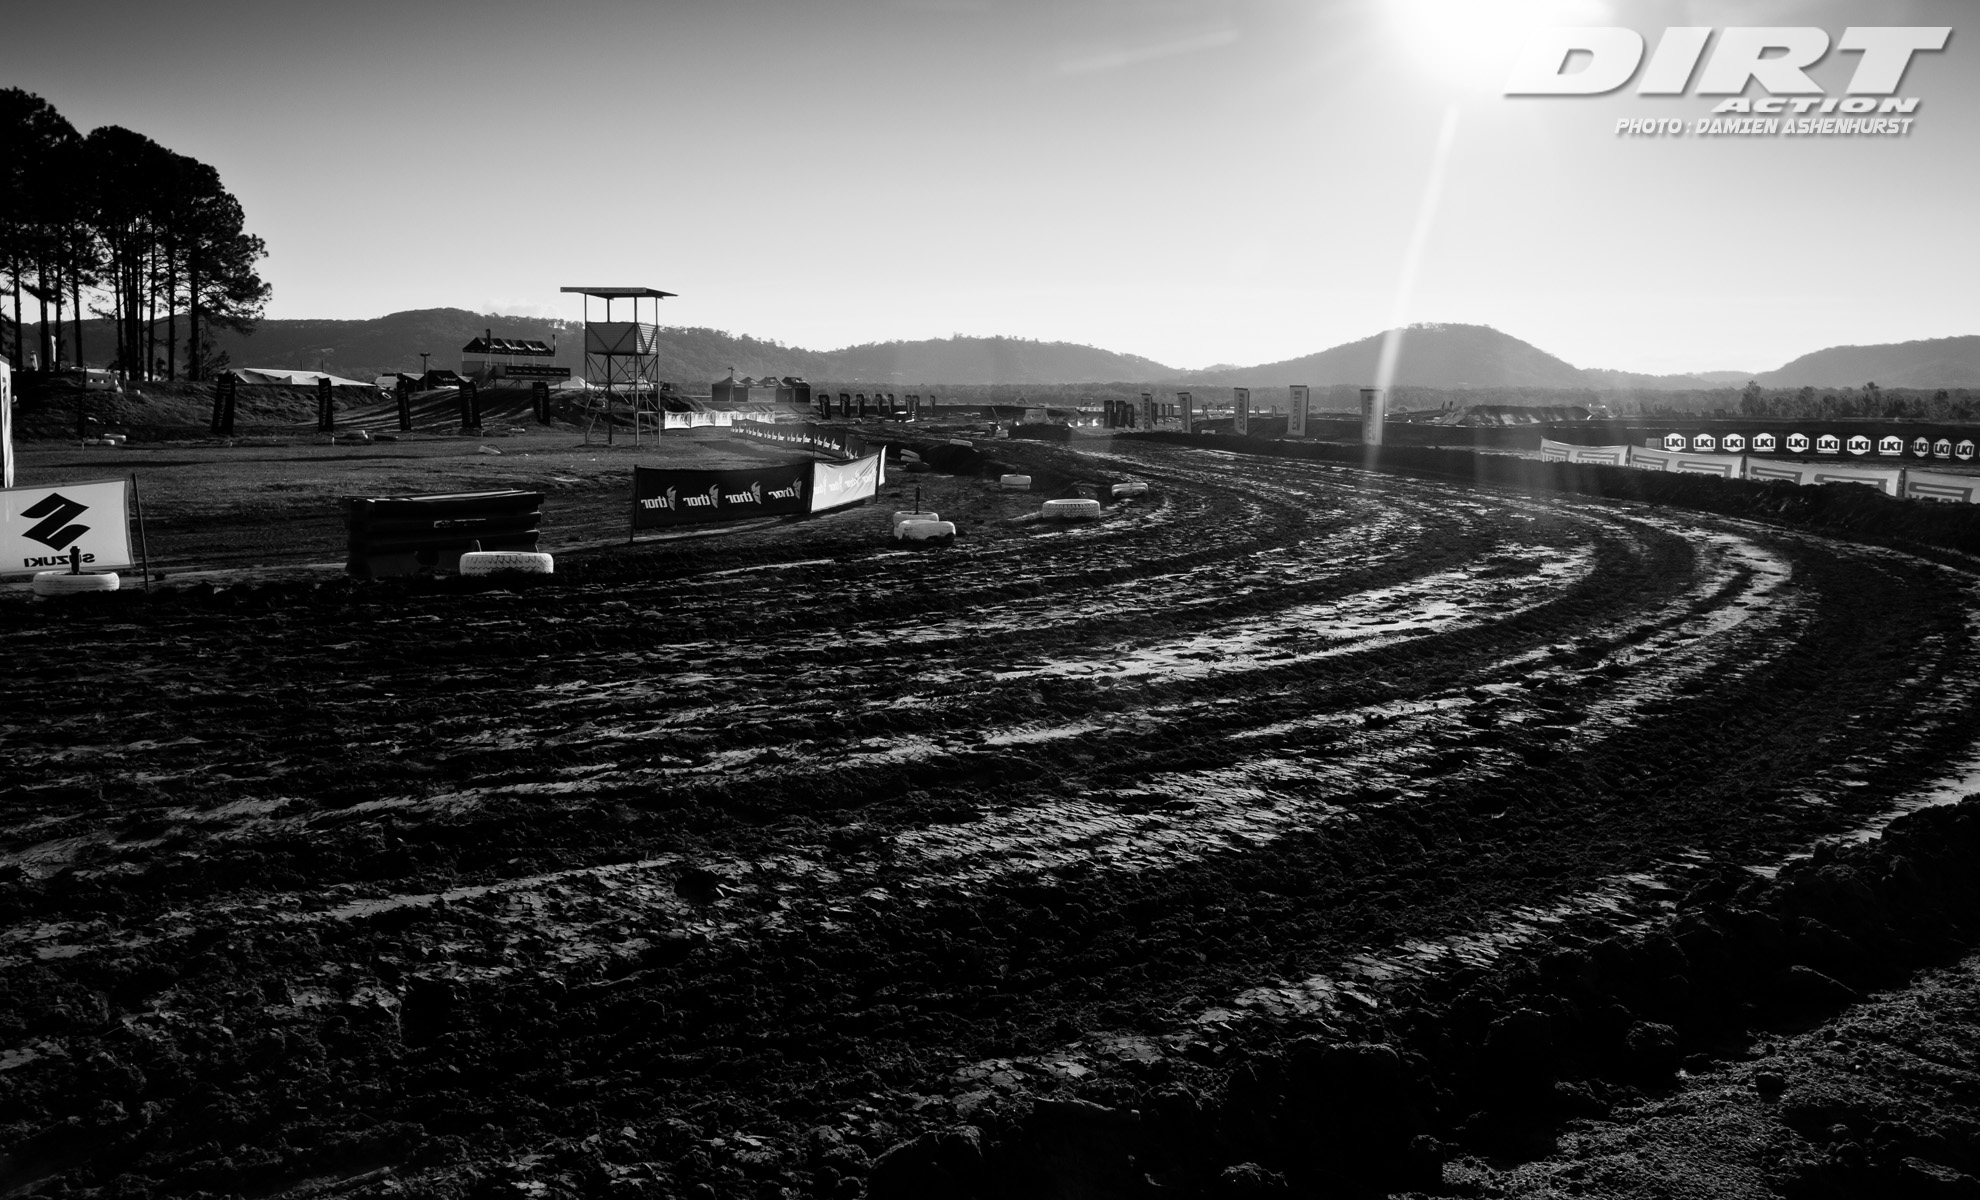 Monster Energy Motocross Nationals - DIRT ACTION magazine - photo Damien Ashenhurst